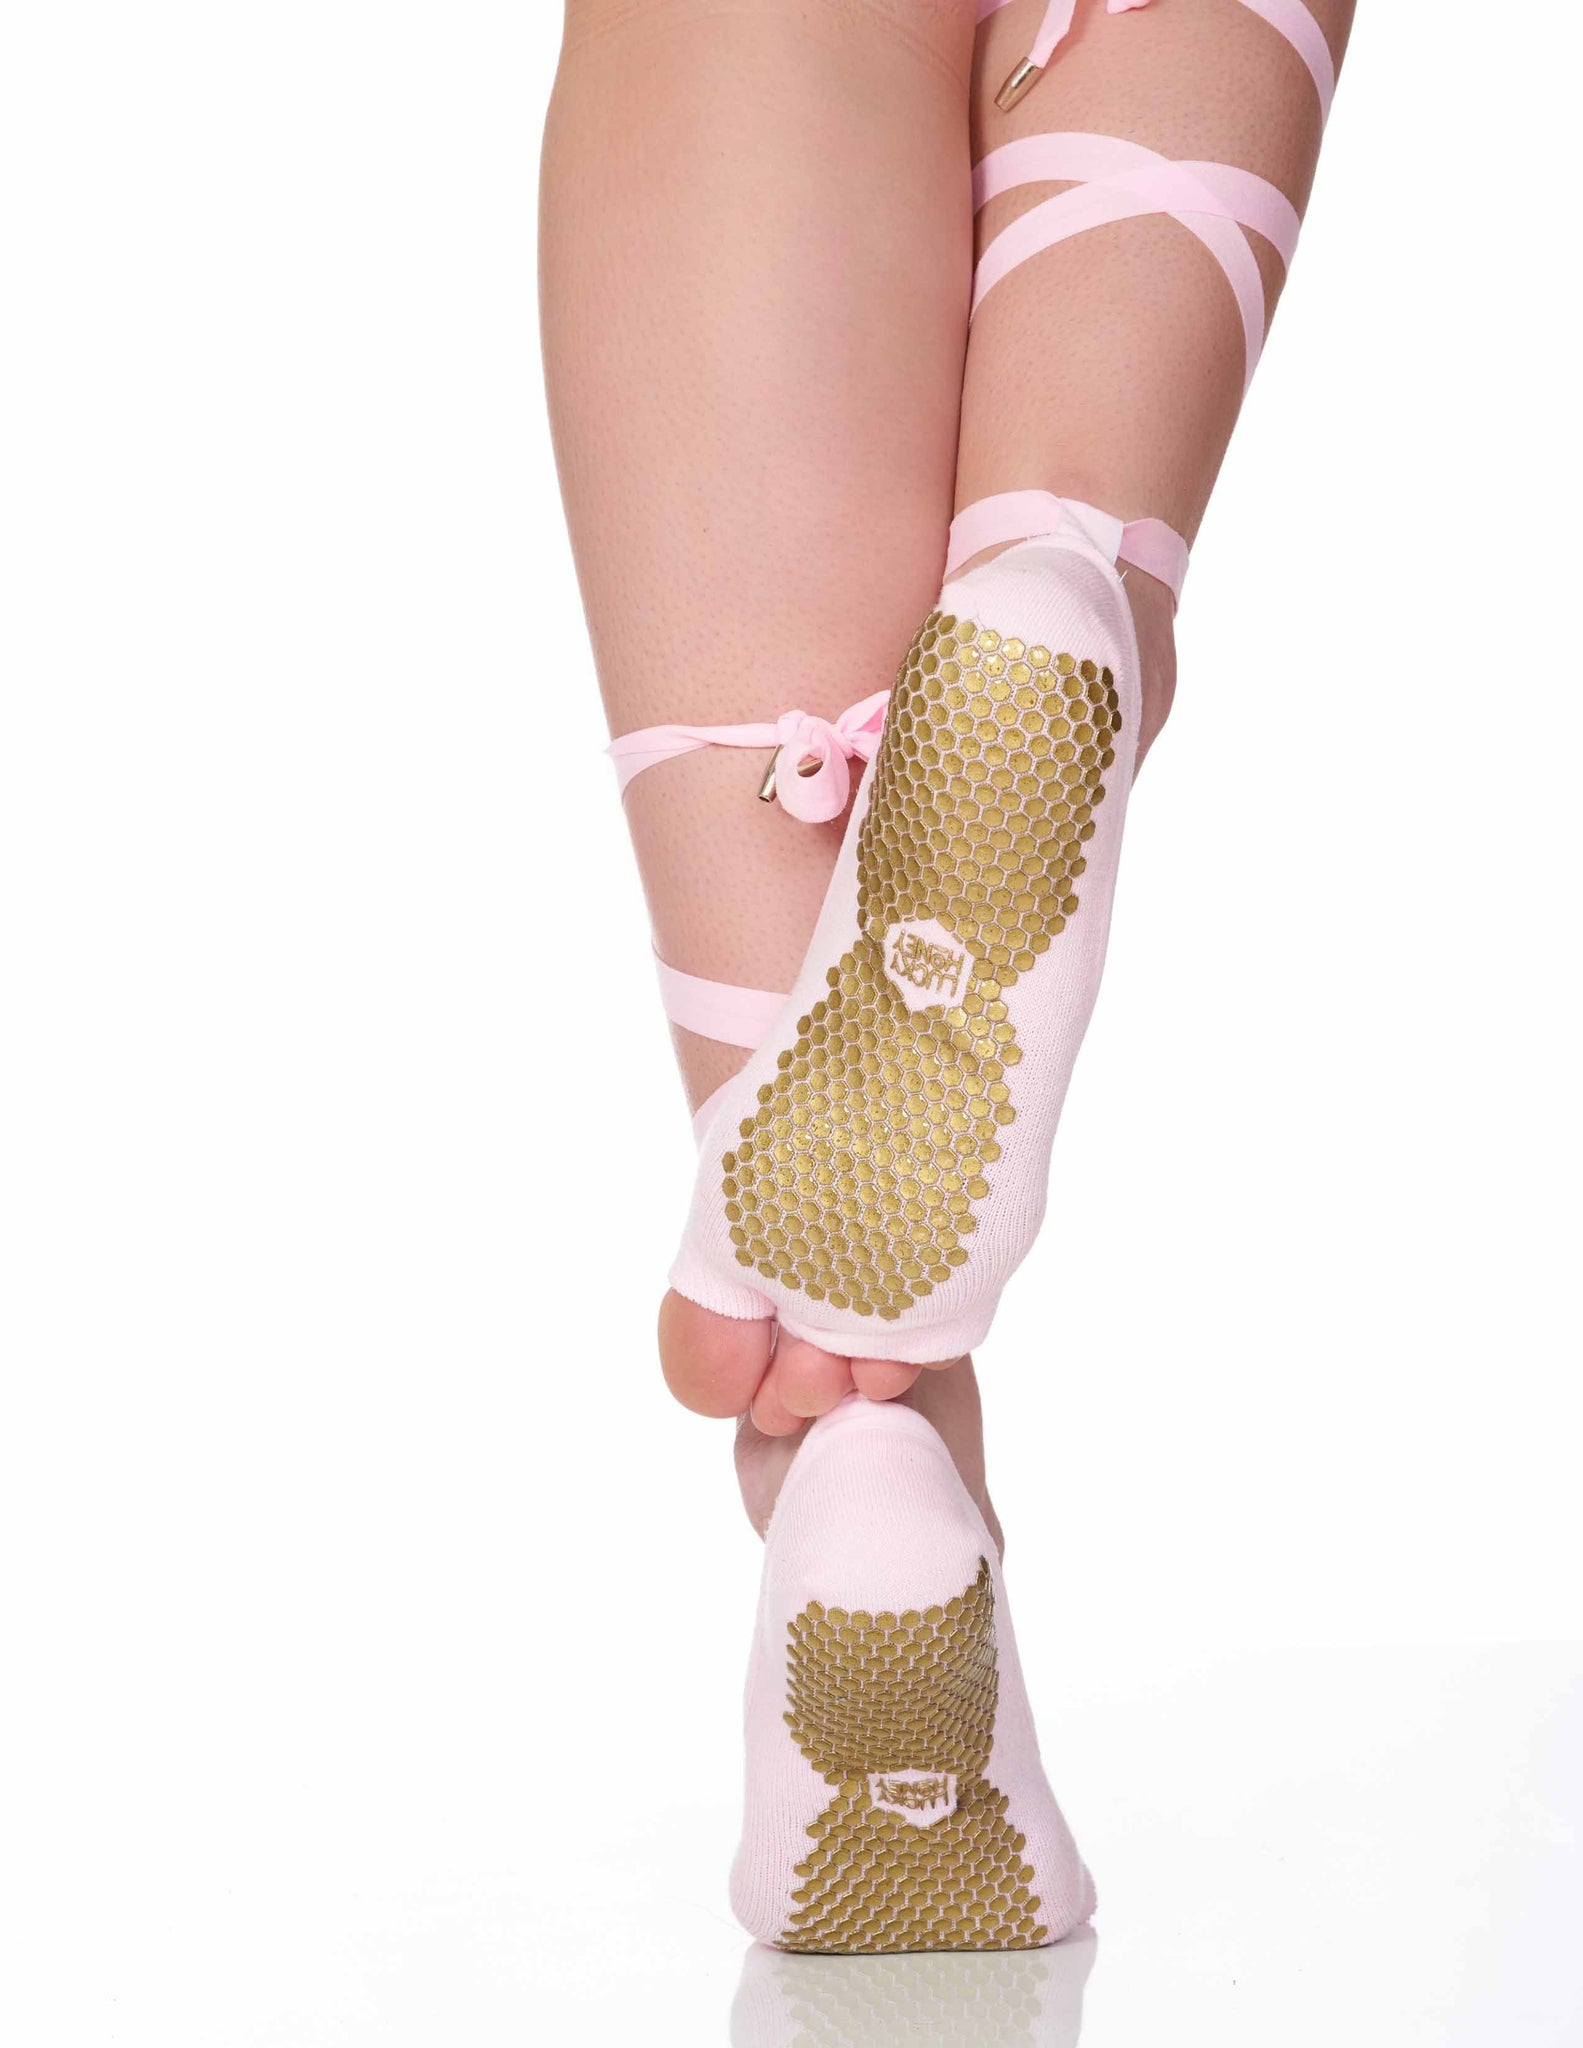 The Toeless Sock Pink, Grip Socks Lucky Honey Grip Socks